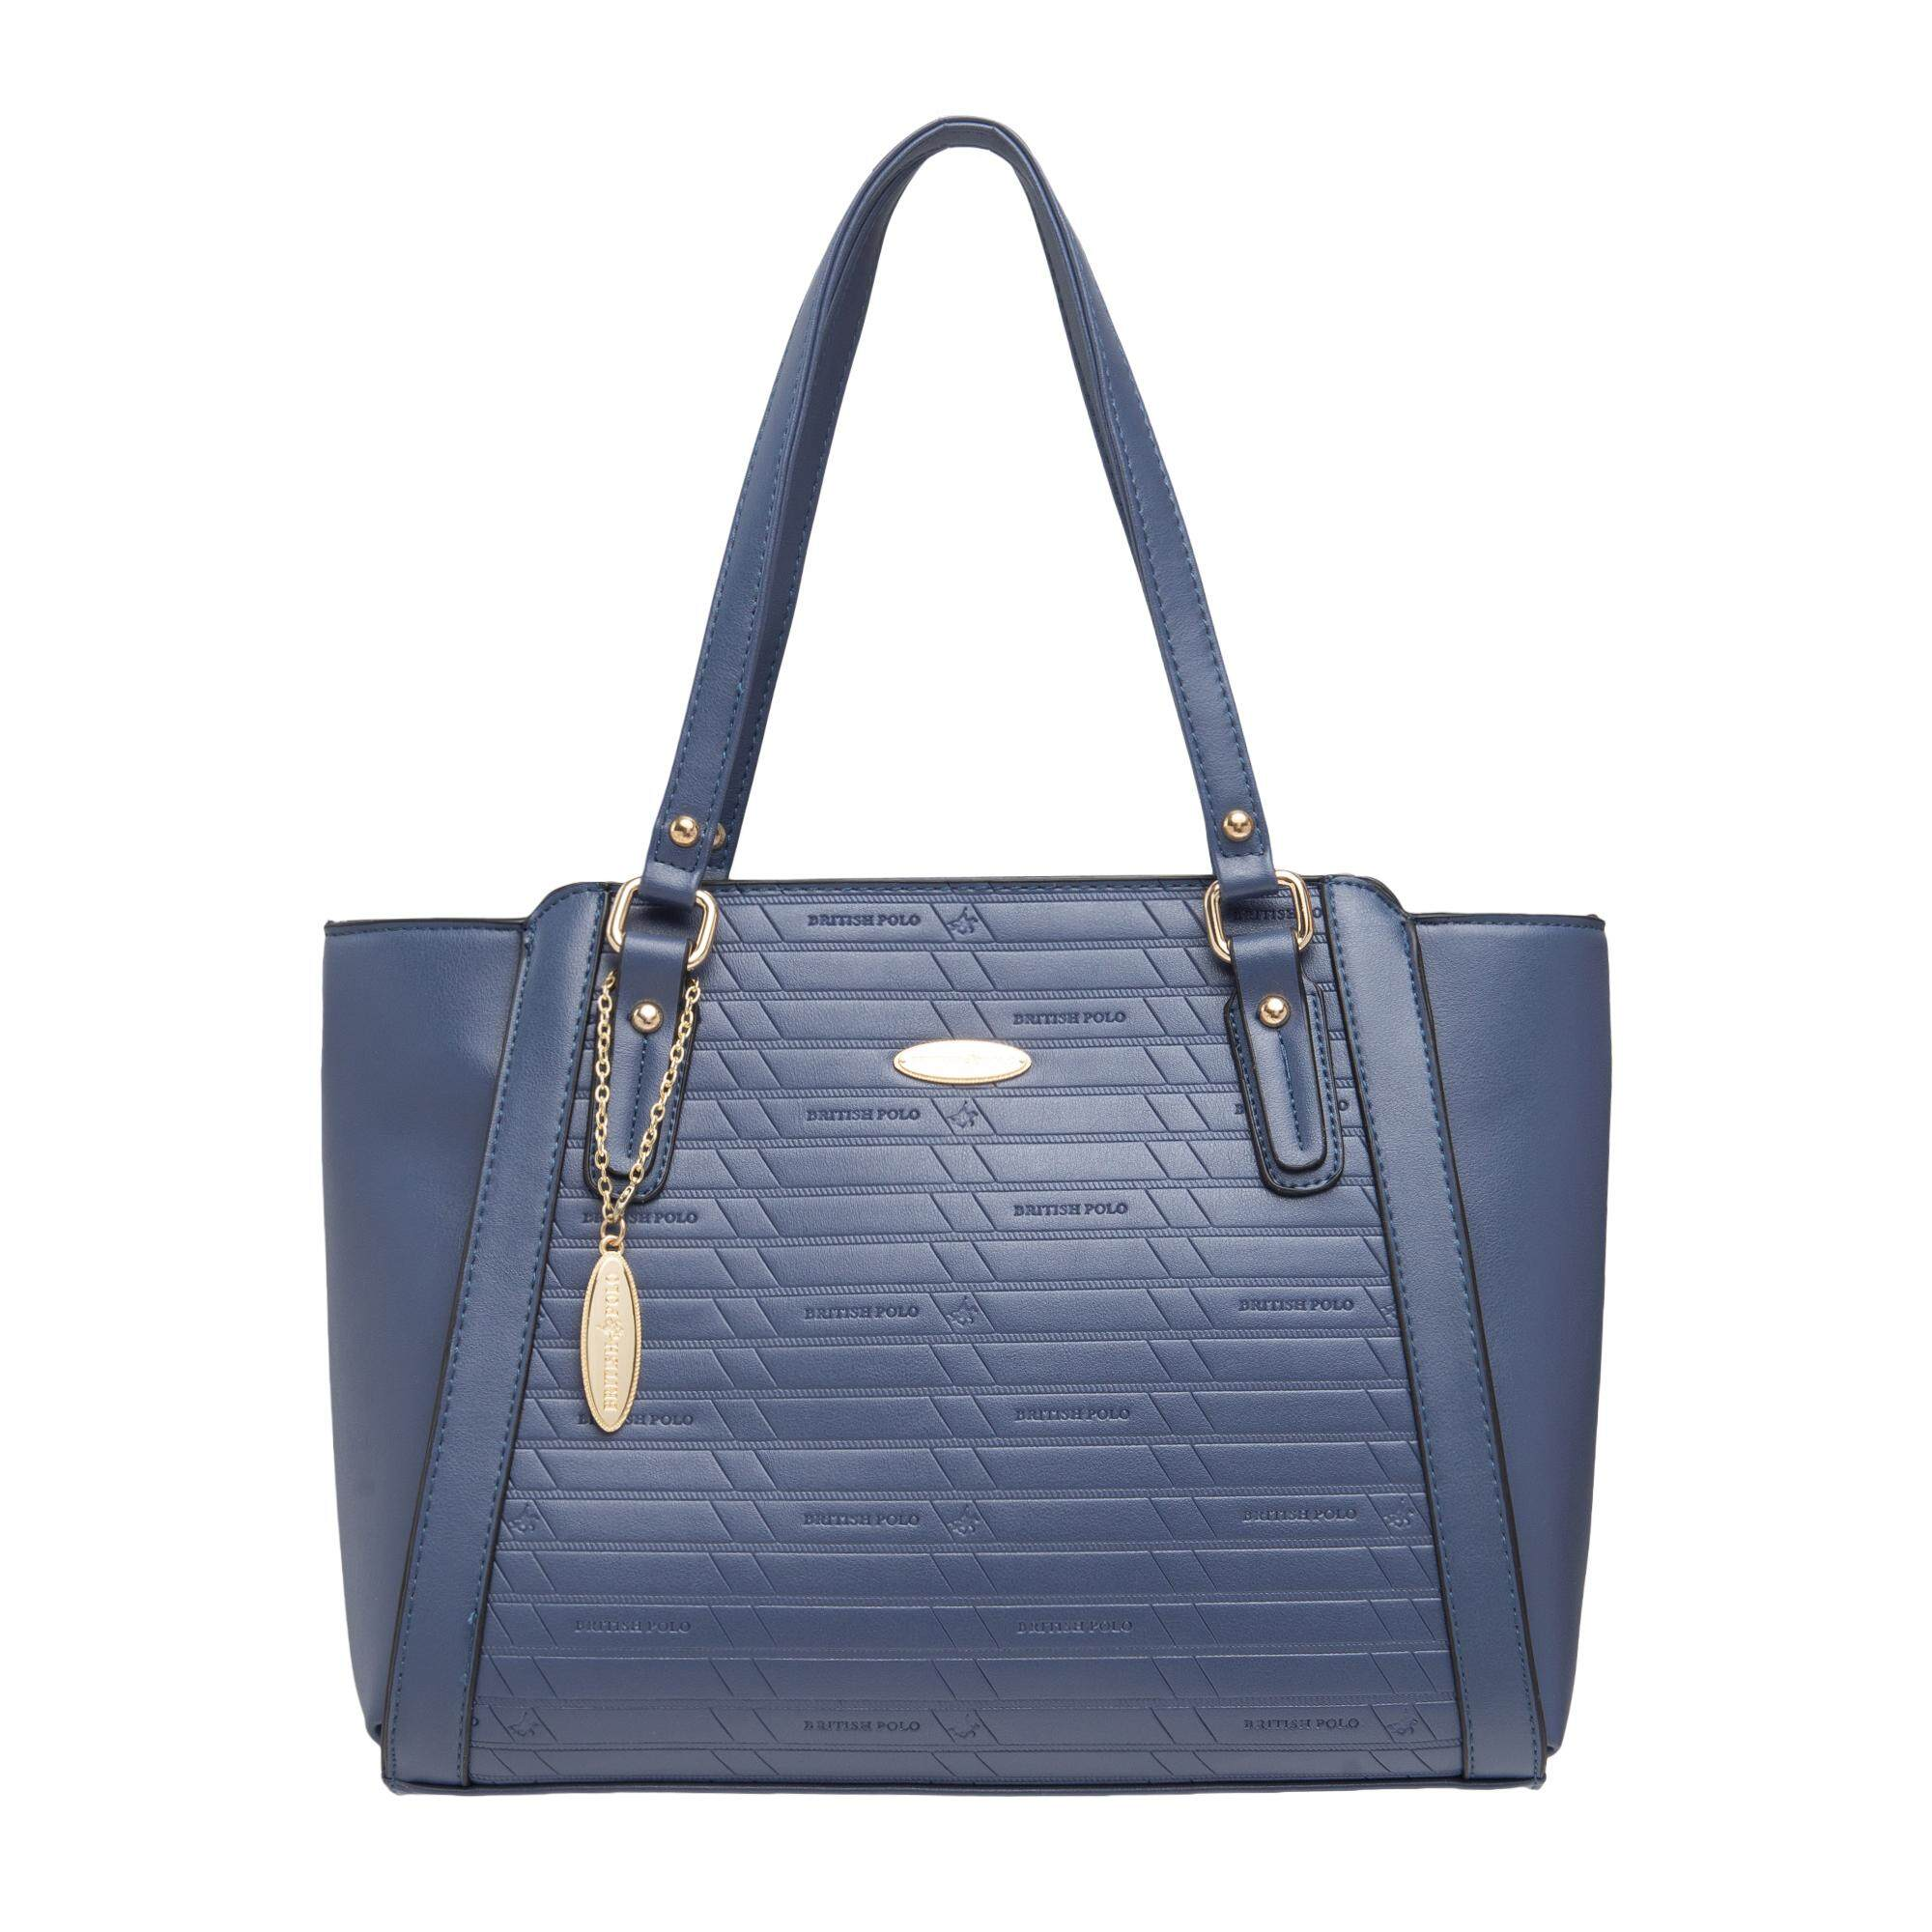 1caf0f9c210b British Polo Women Bags price in Malaysia - Best British Polo Women Bags